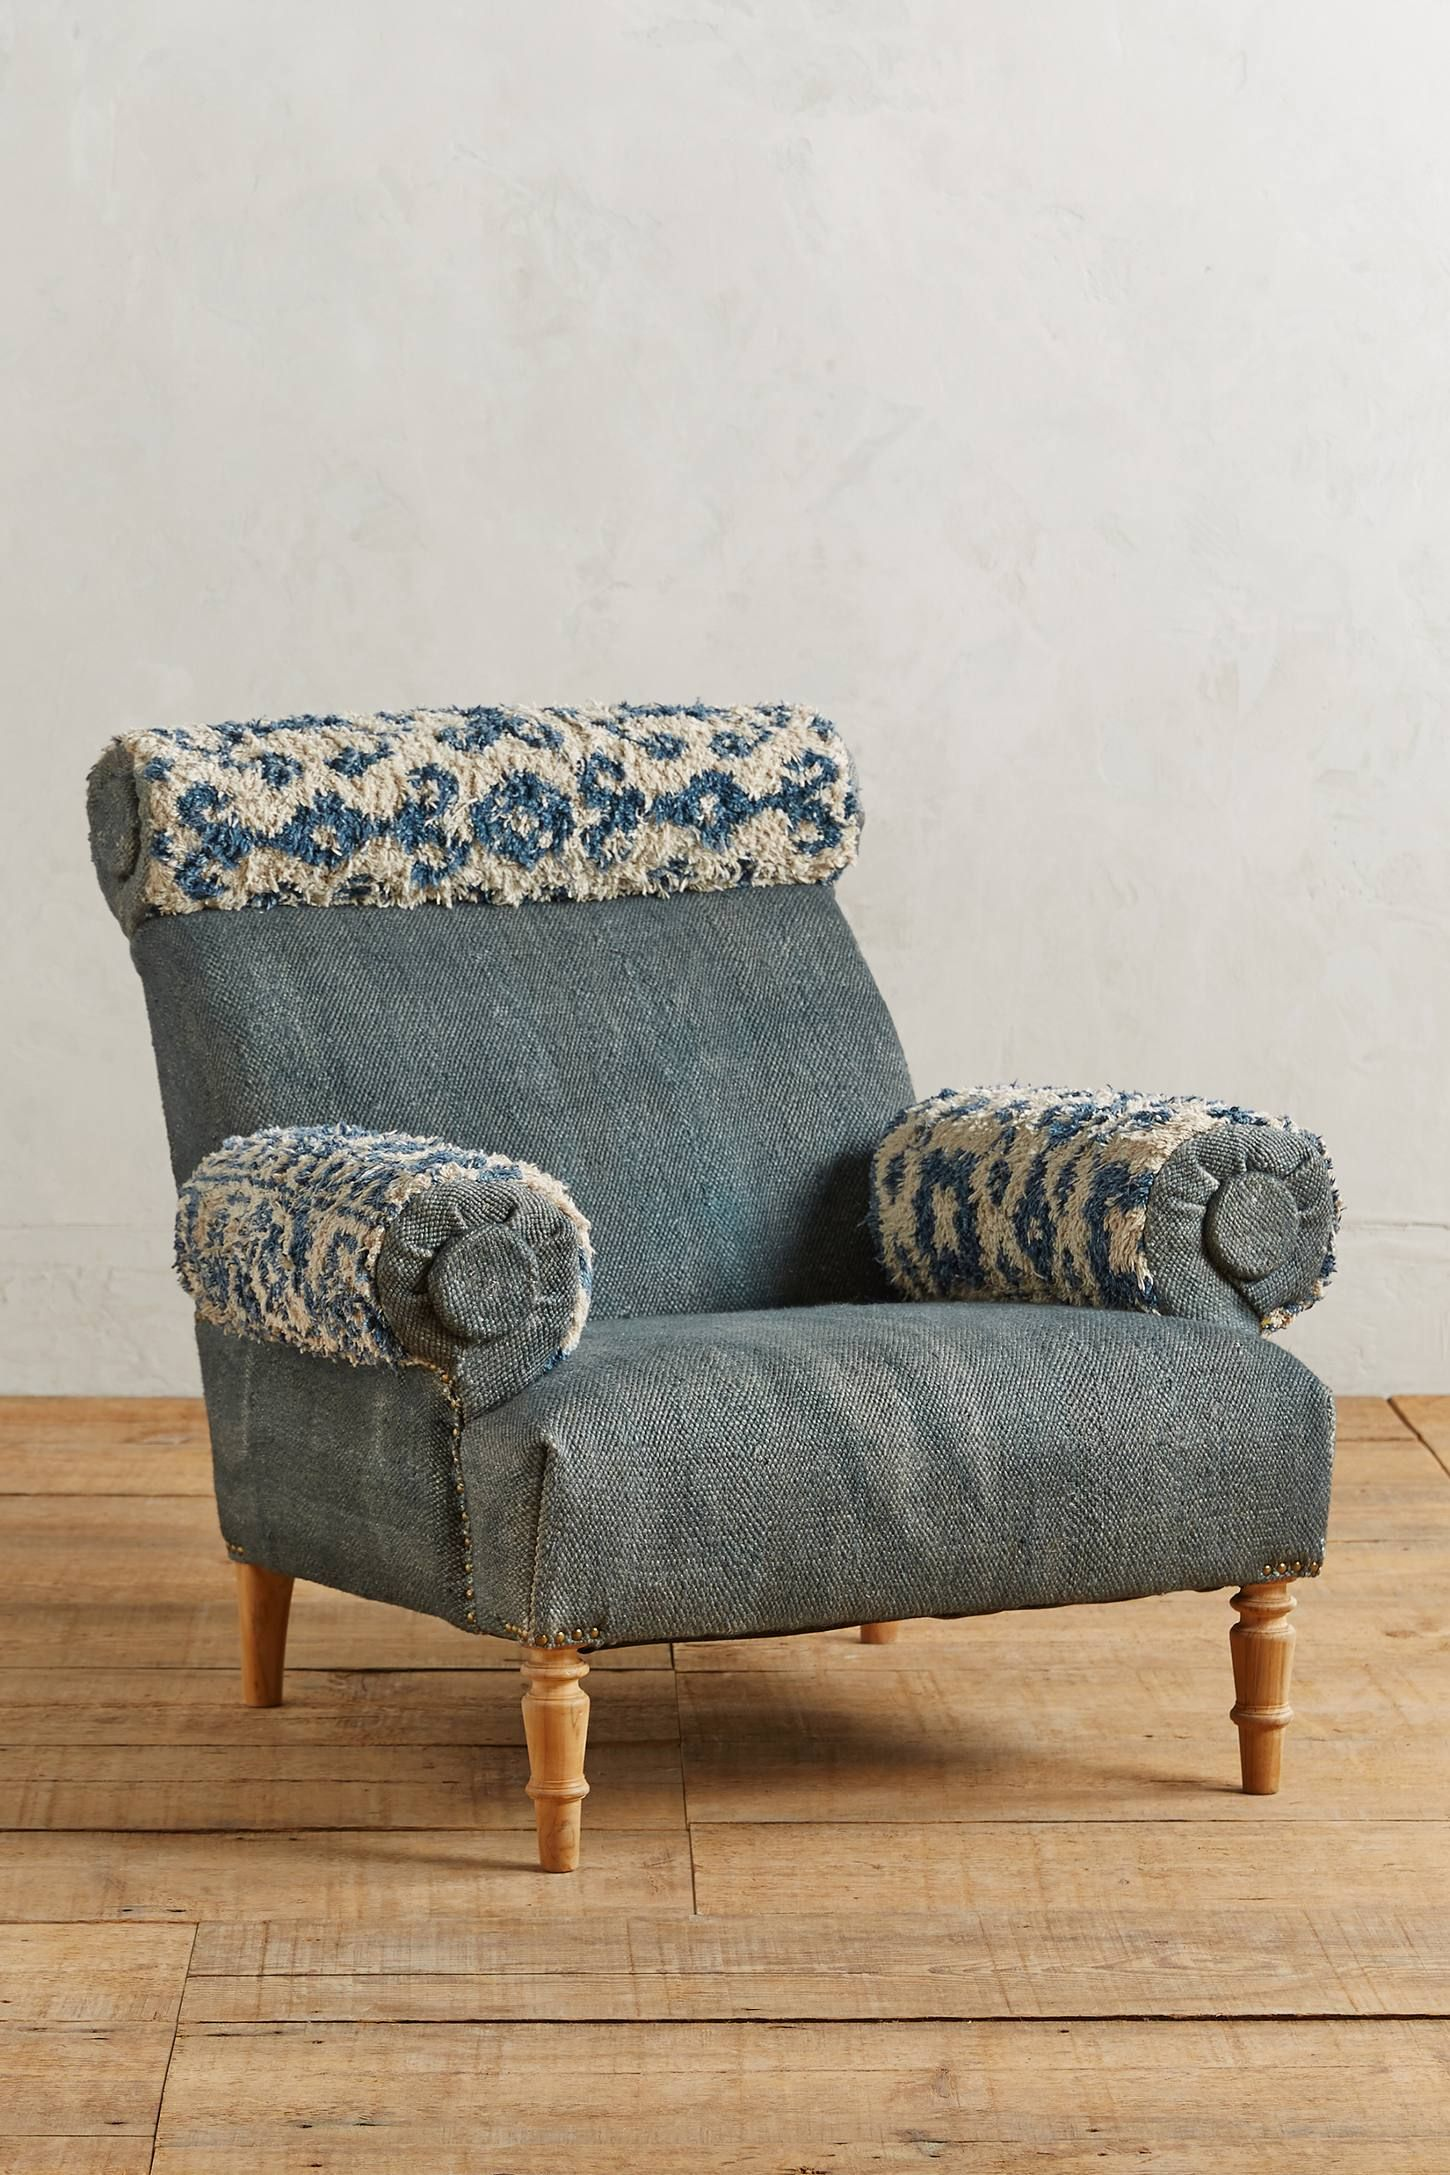 anthropologie style furniture. Sigrid Armchair - Anthropologie. Furniture Anthropologie Style